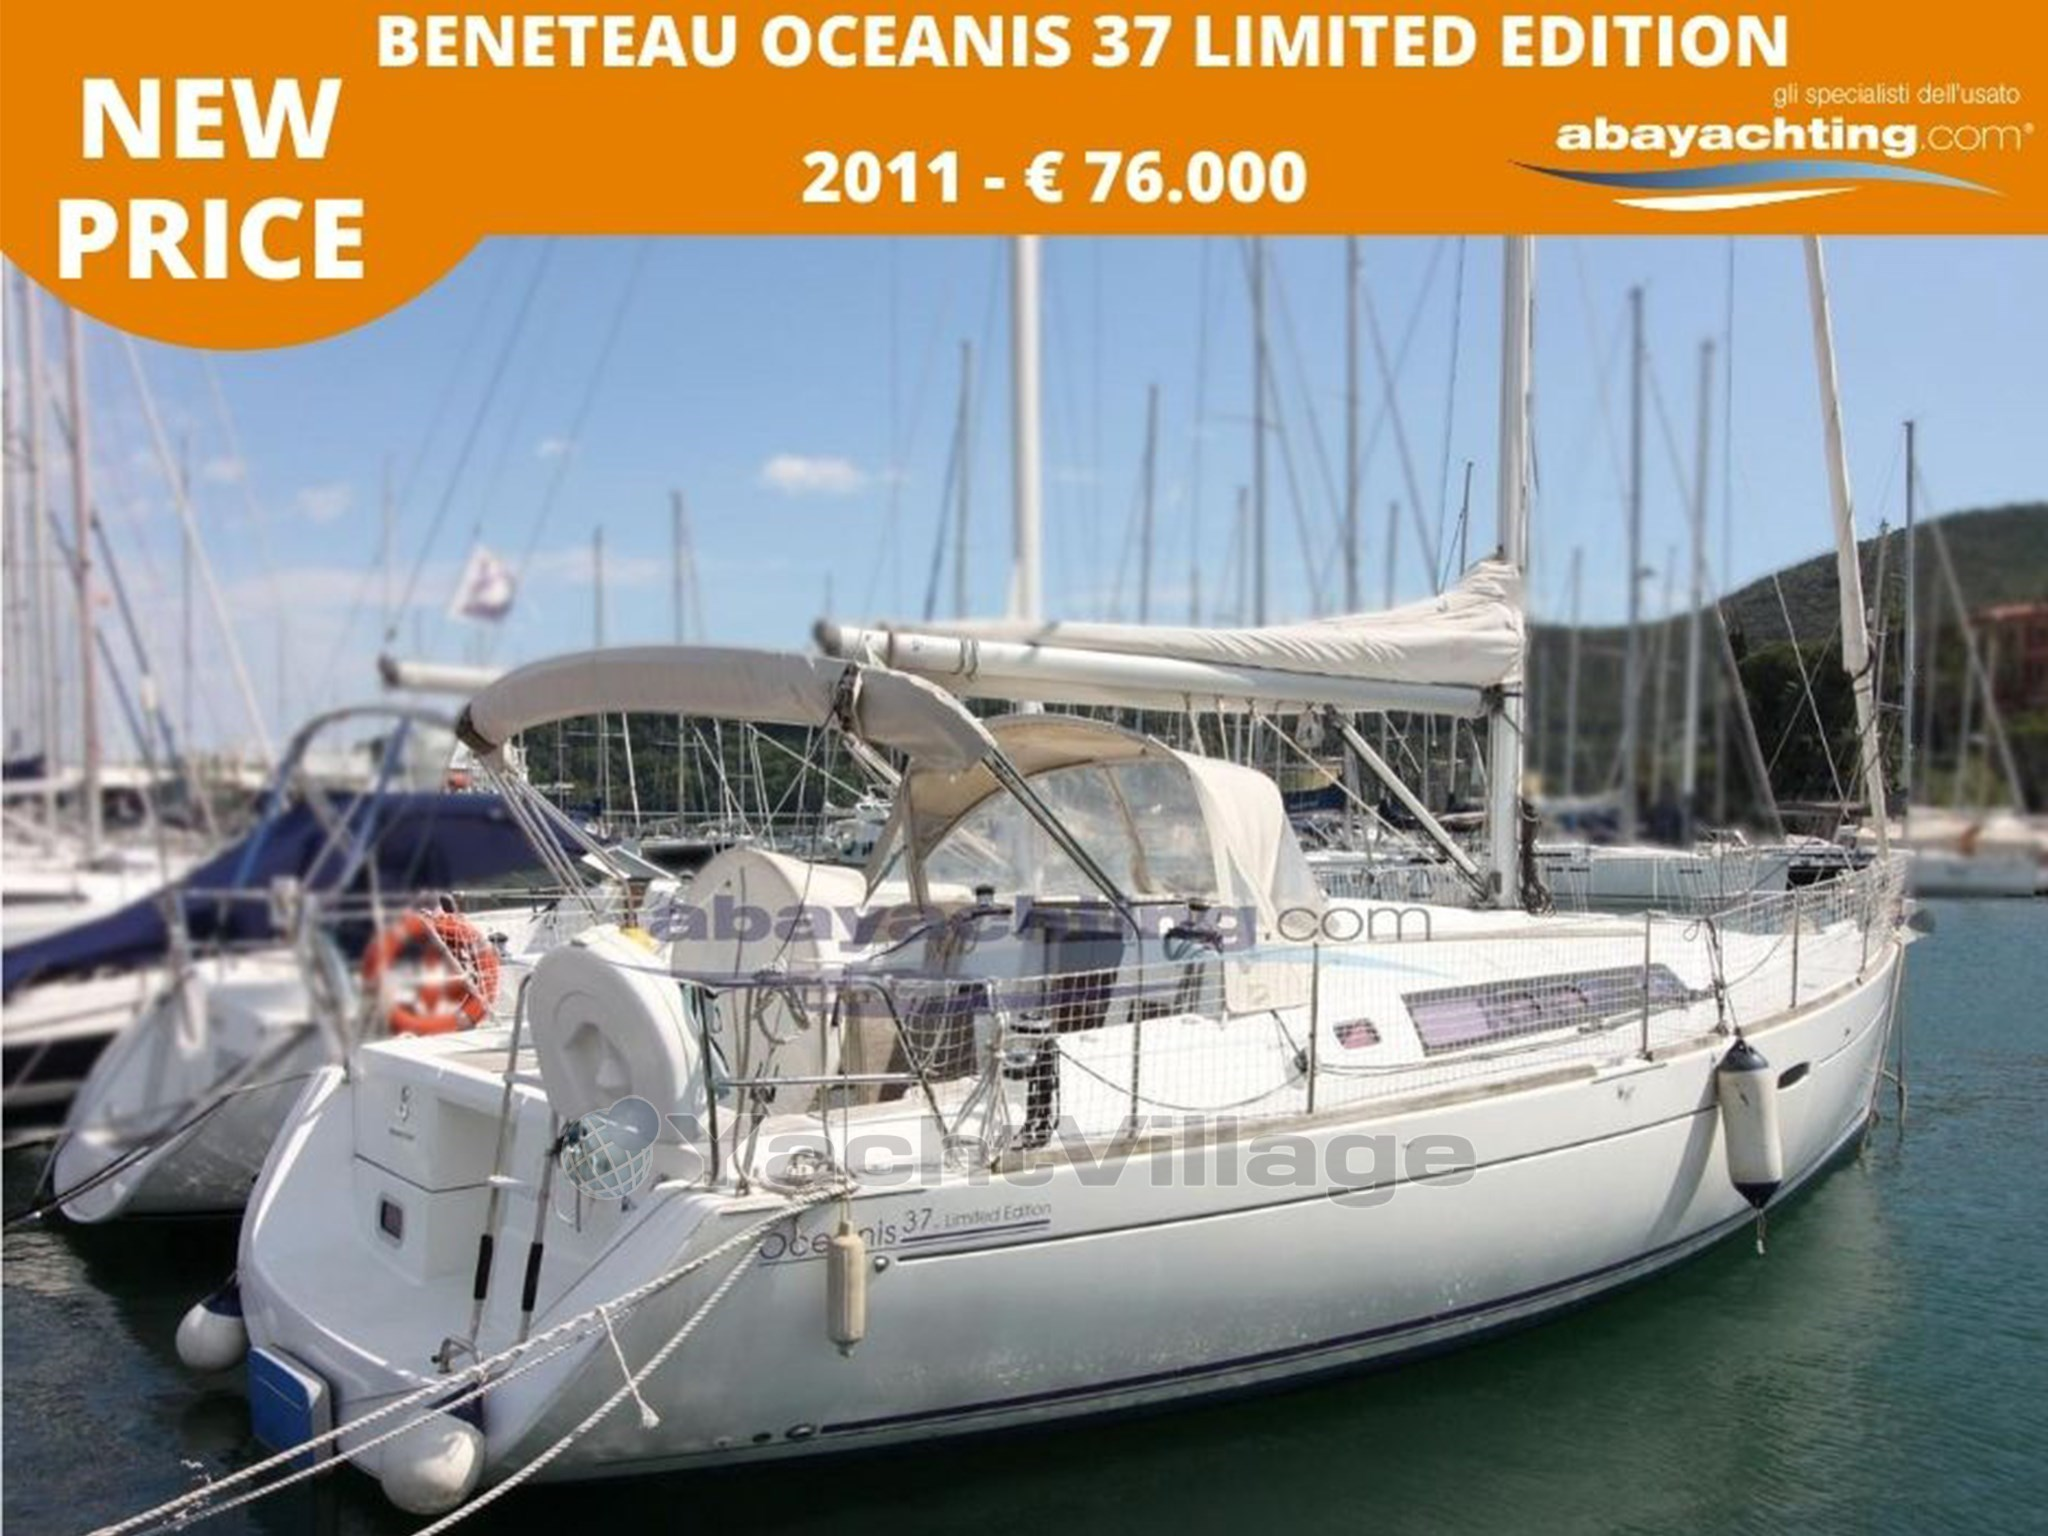 Abayachting Beneteau Oceanis 37 Limited 1